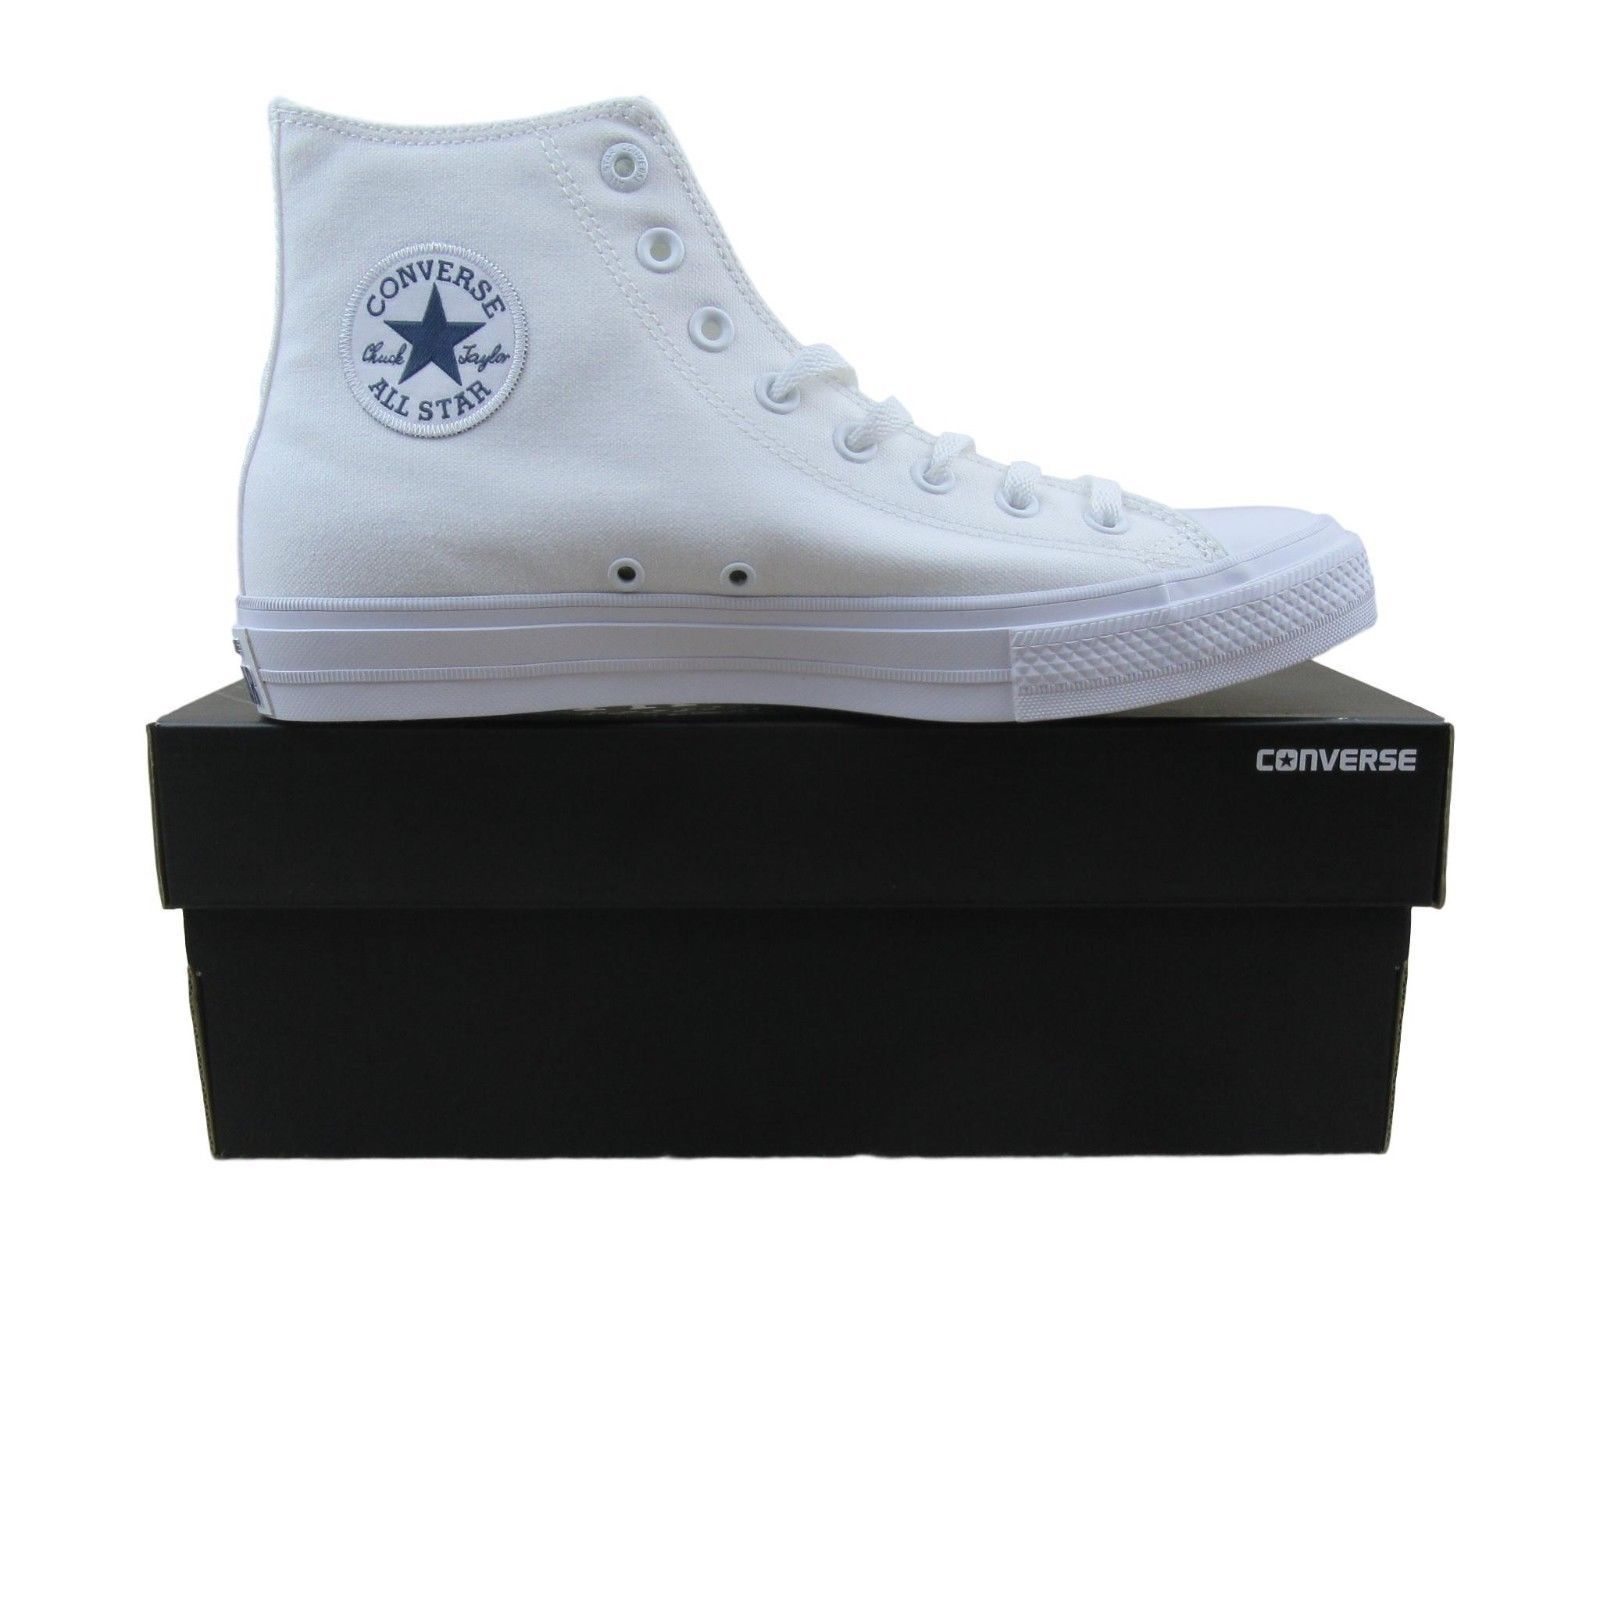 cee6524650a8ef Converse Chuck Taylor All Star II Hi Shoes Lunarlon White 150148C ...